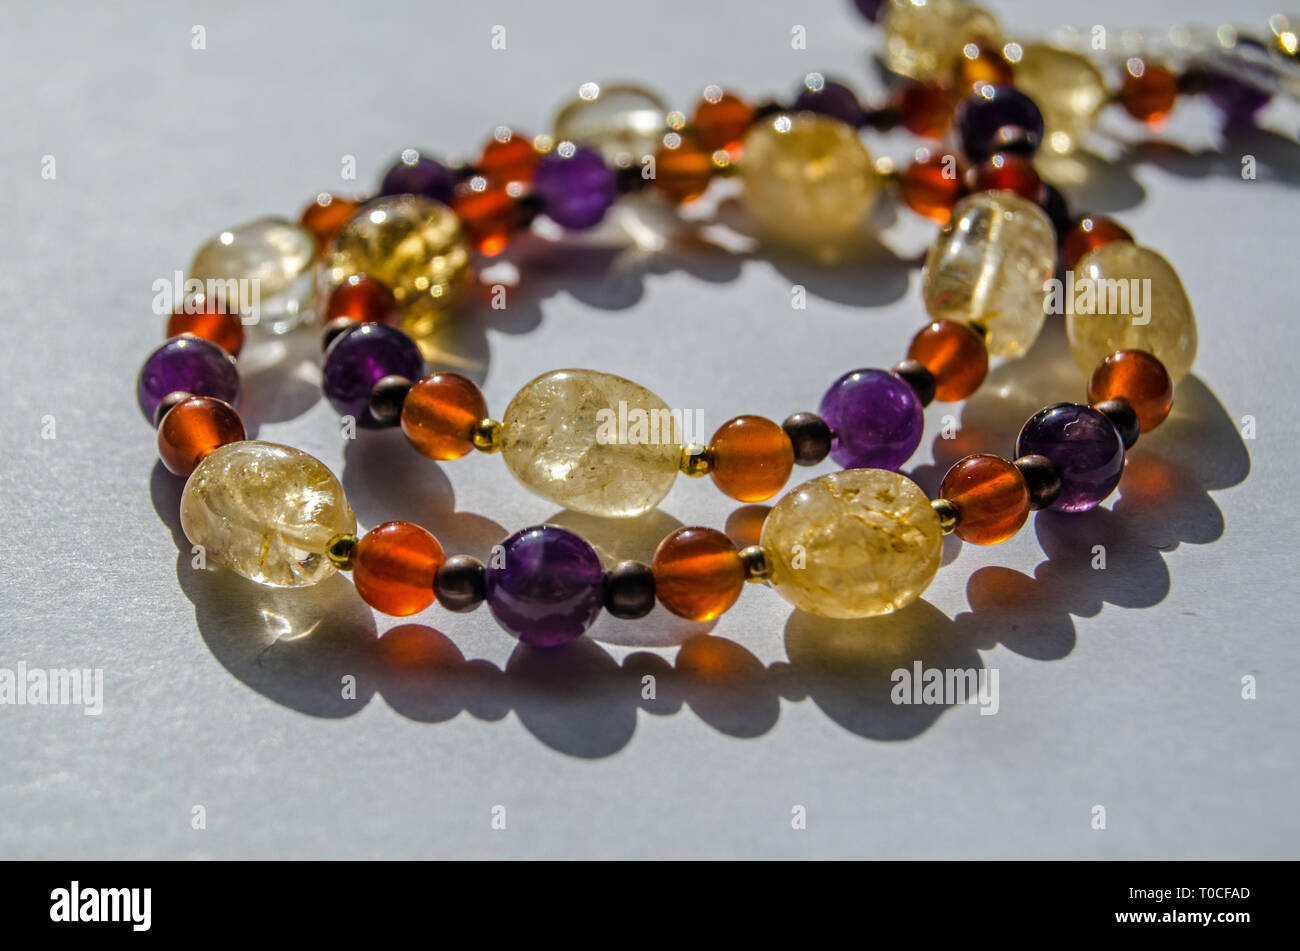 Bracelet and necklace hand made using colourful semi-precious gemstone beads including yellow citrine, purple amethyst and orange carnelian. Stock Photo